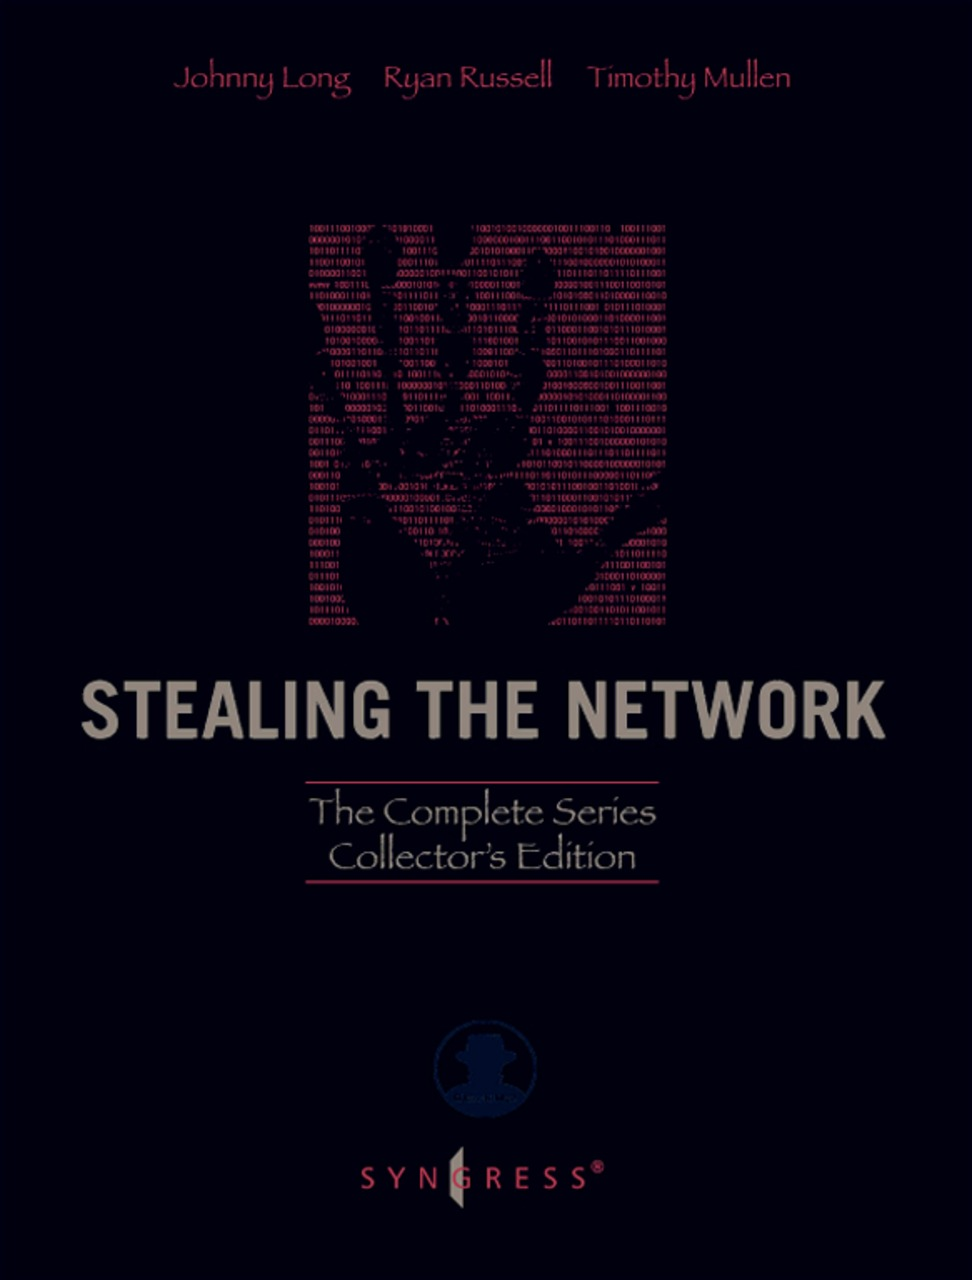 Stealing the Network: The Complete Series Collector's Edition, Final Chapter, and DVD The Complete Series Collector's Edition, Final Chapter, and DVD